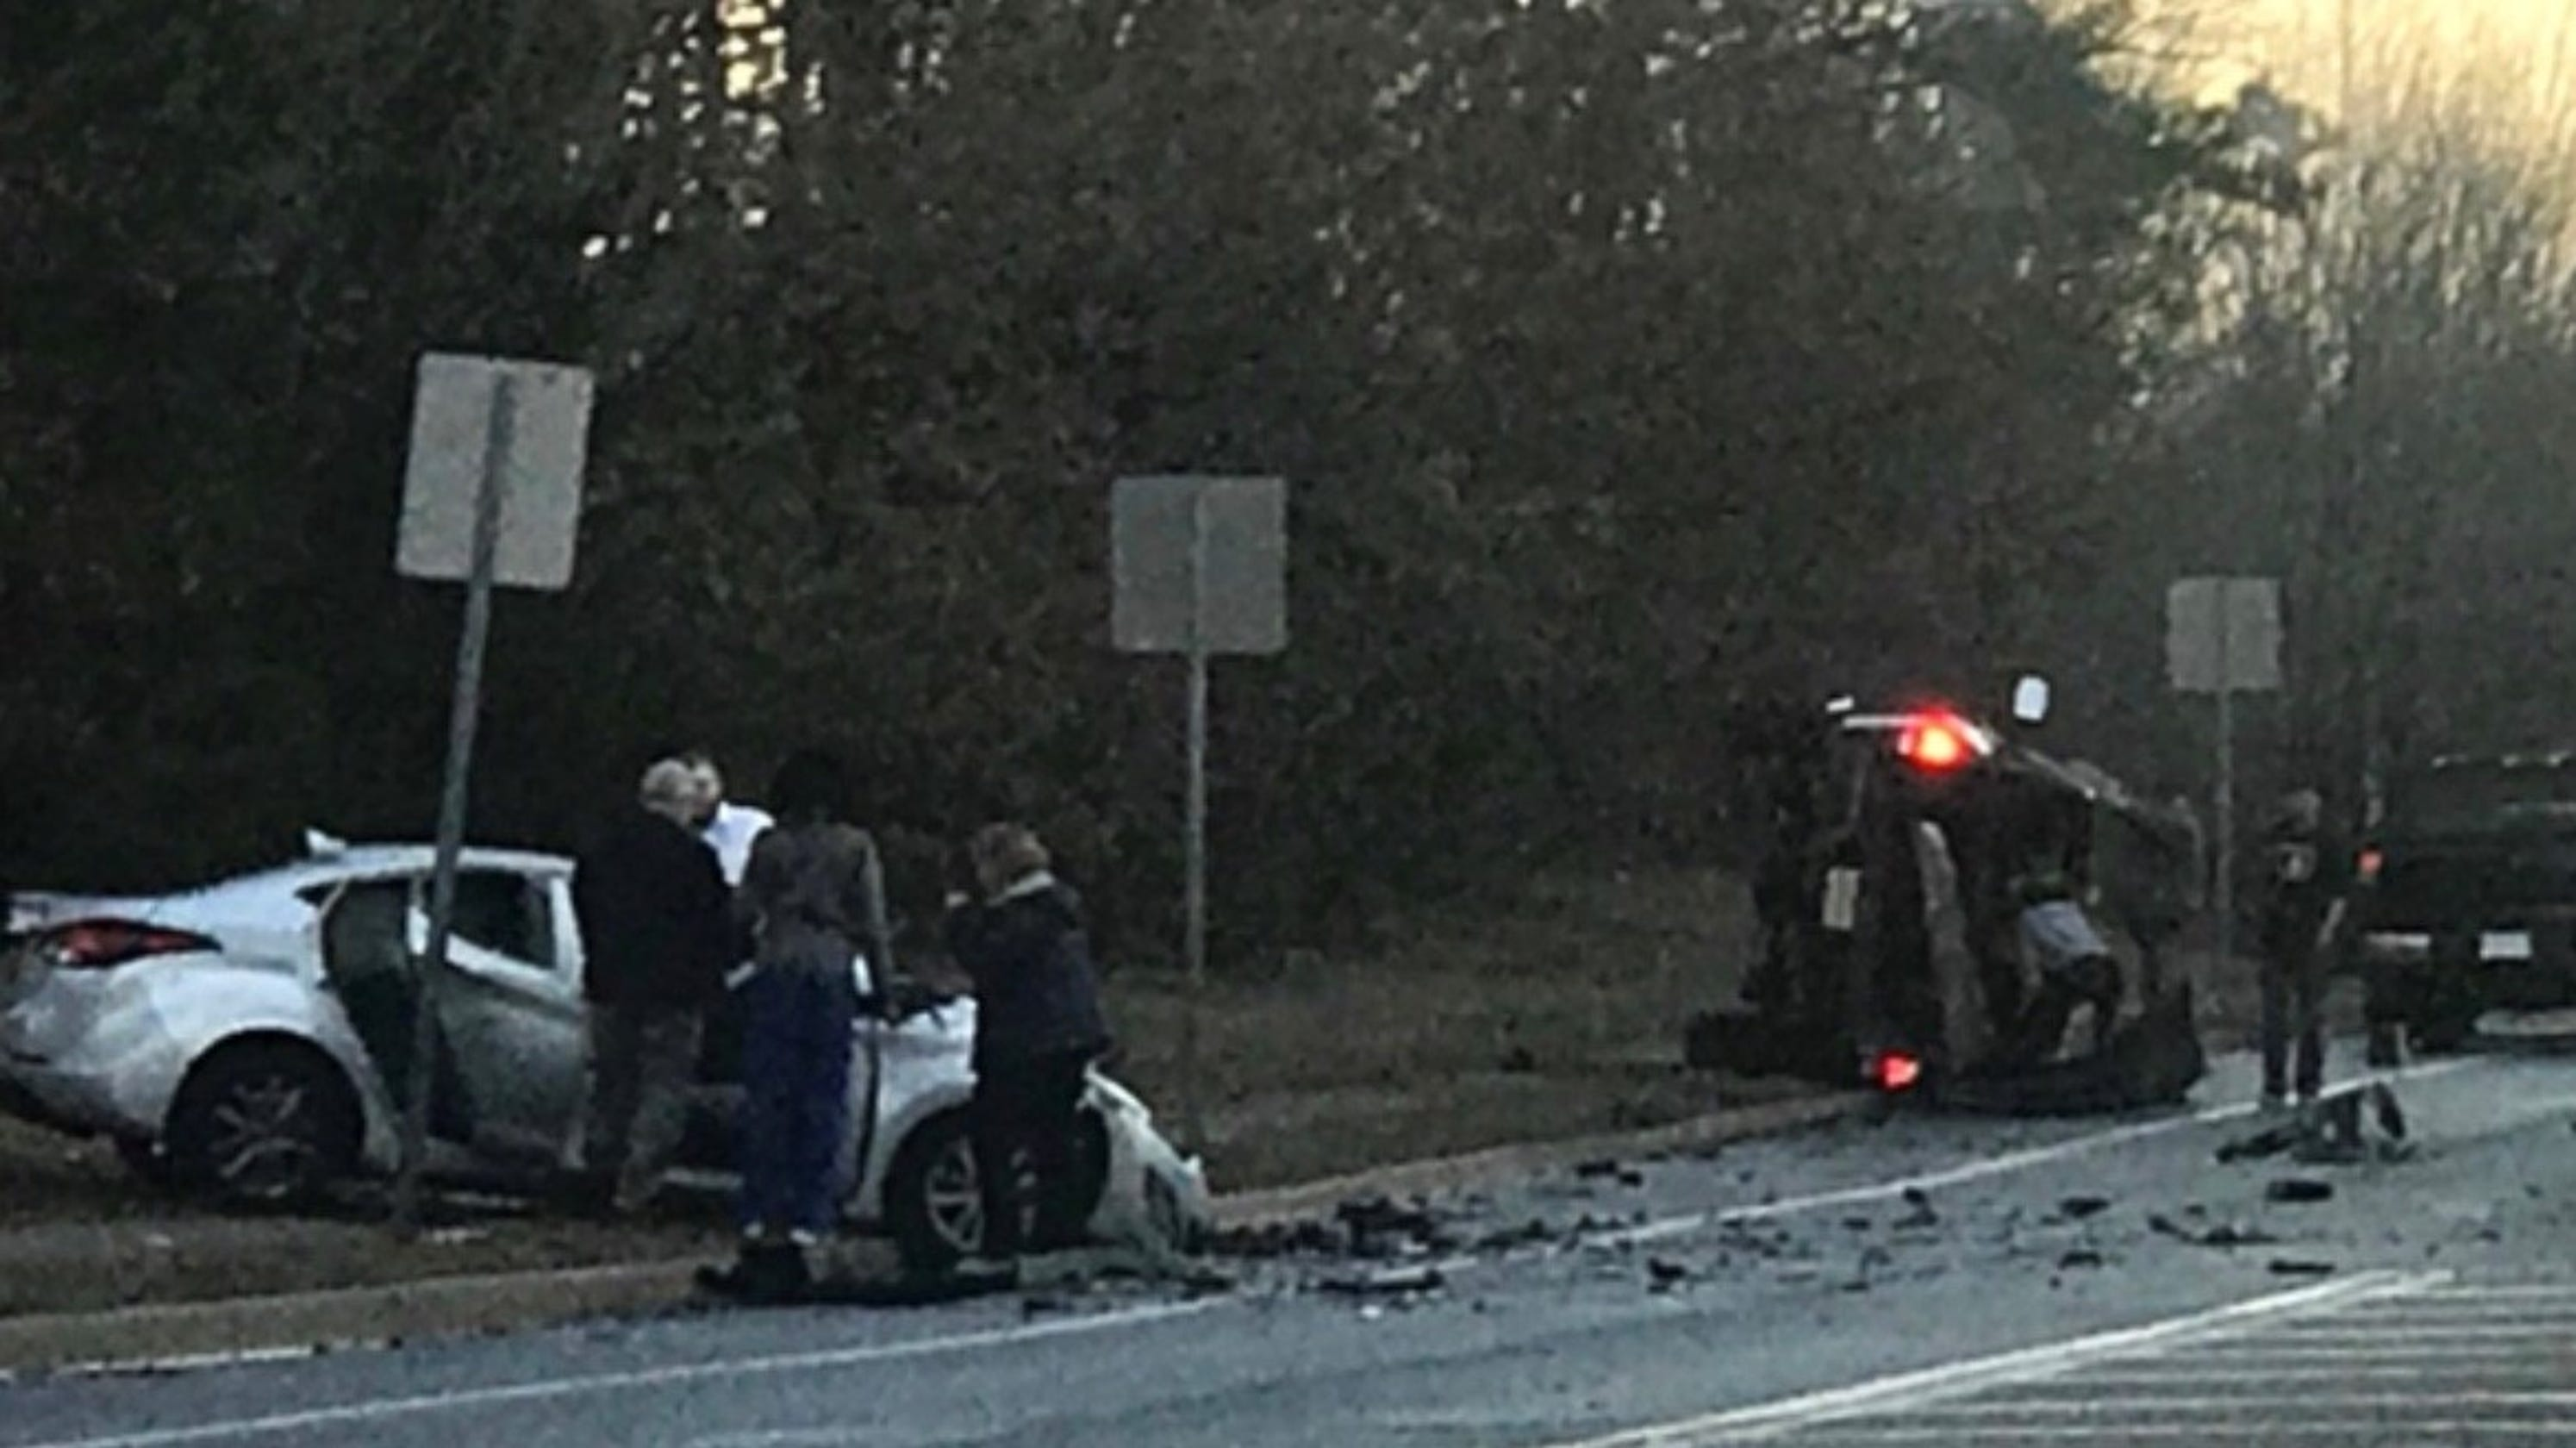 2 injured in 3-vehicle crash on Whitesville Road in Toms River